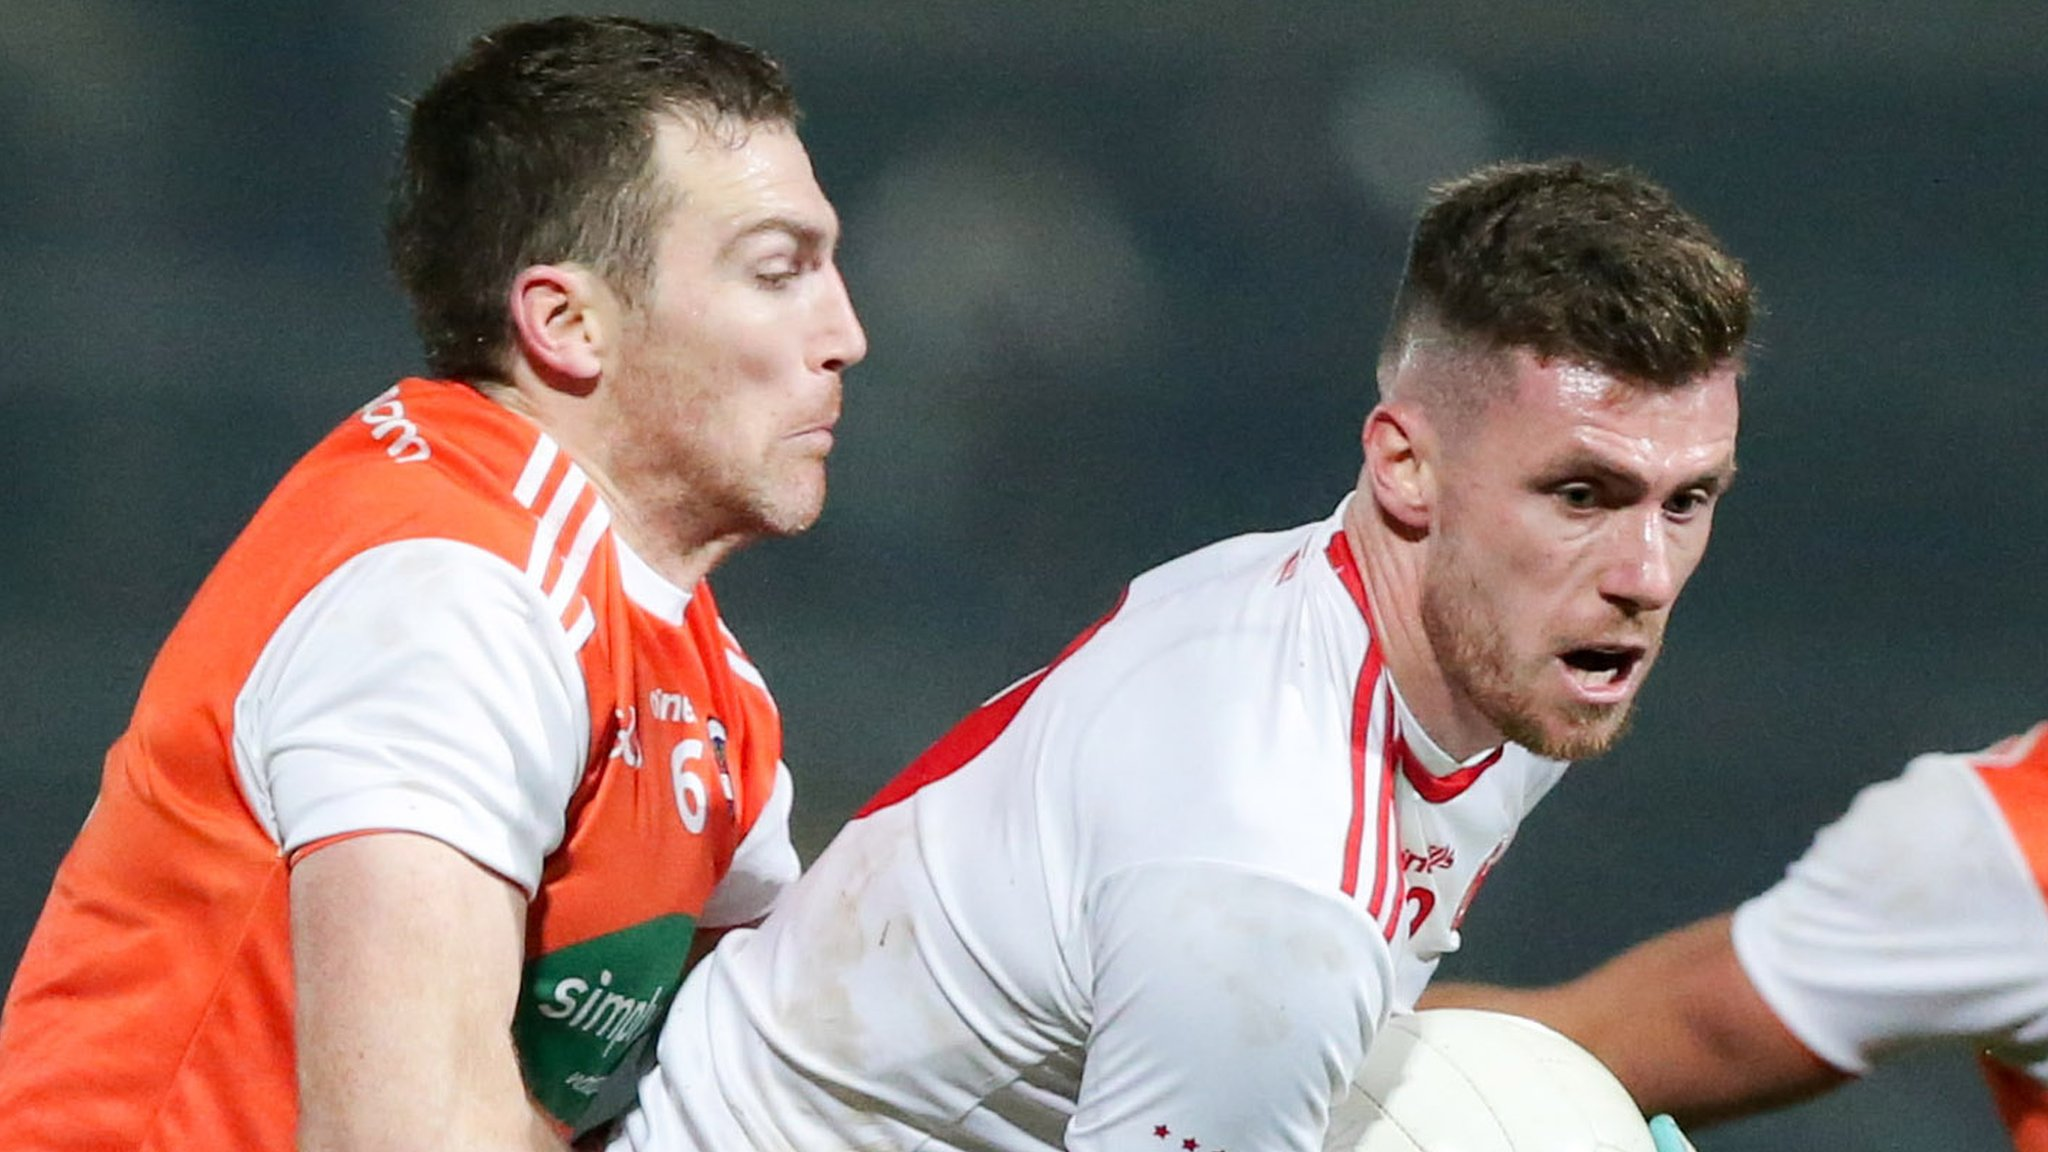 Dr McKenna Cup: Tyrone edge out 13-man Armagh 0-16 to 0-14 in feisty final